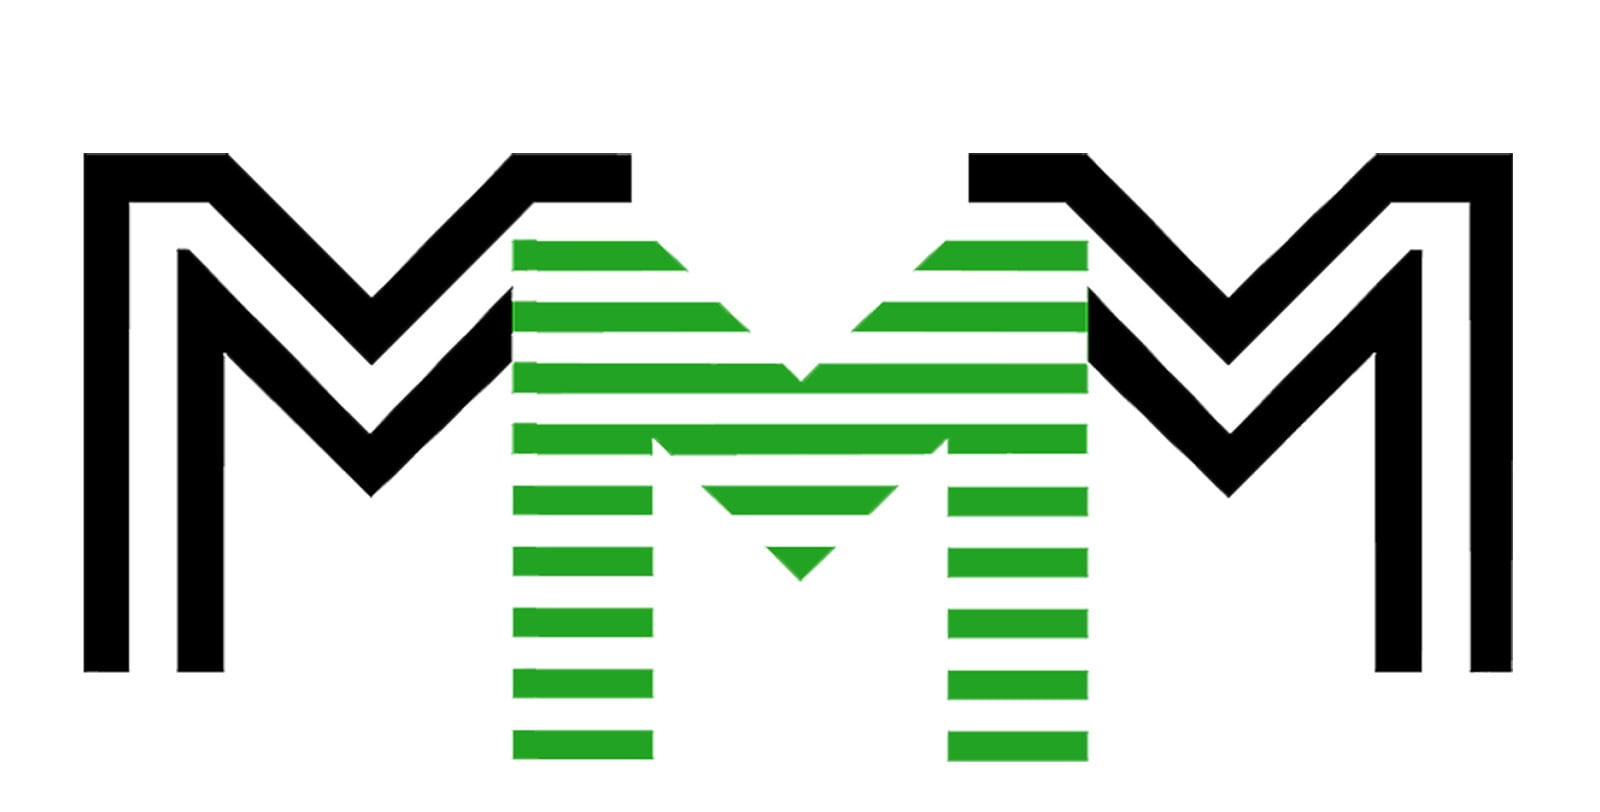 About MMM in Nigeria